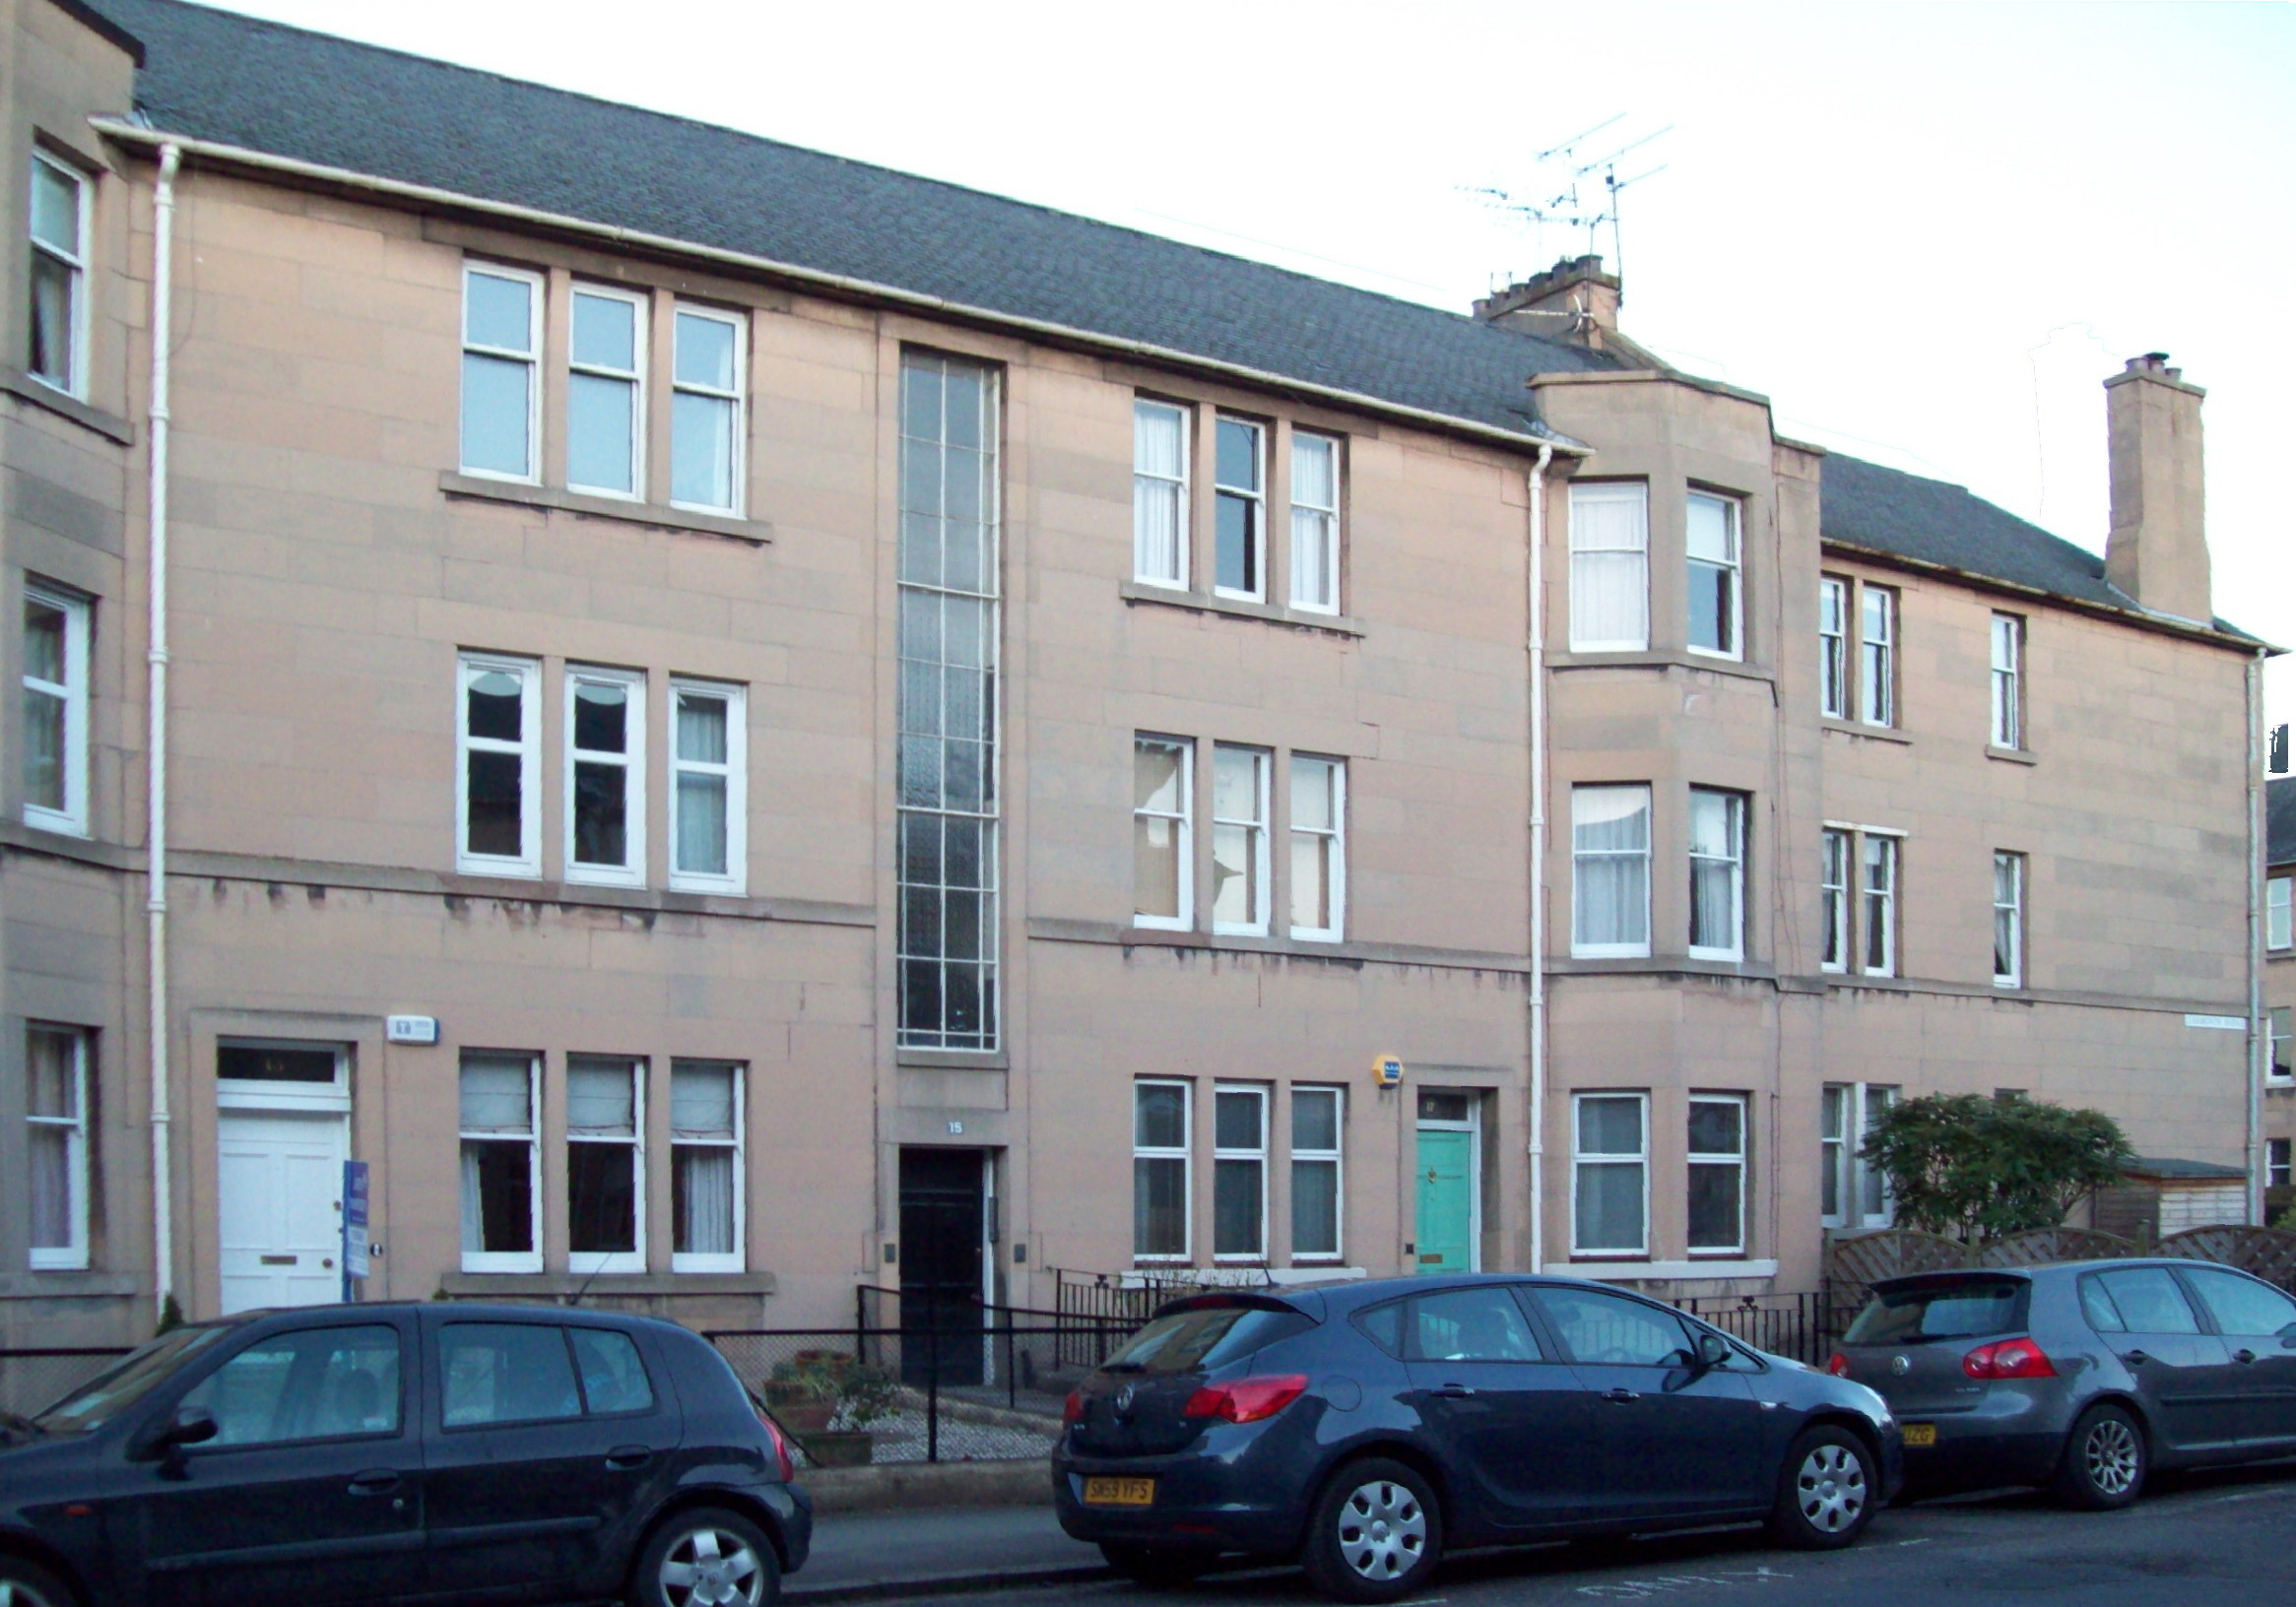 The children of george and florence shirran for 17 learmonth terrace edinburgh